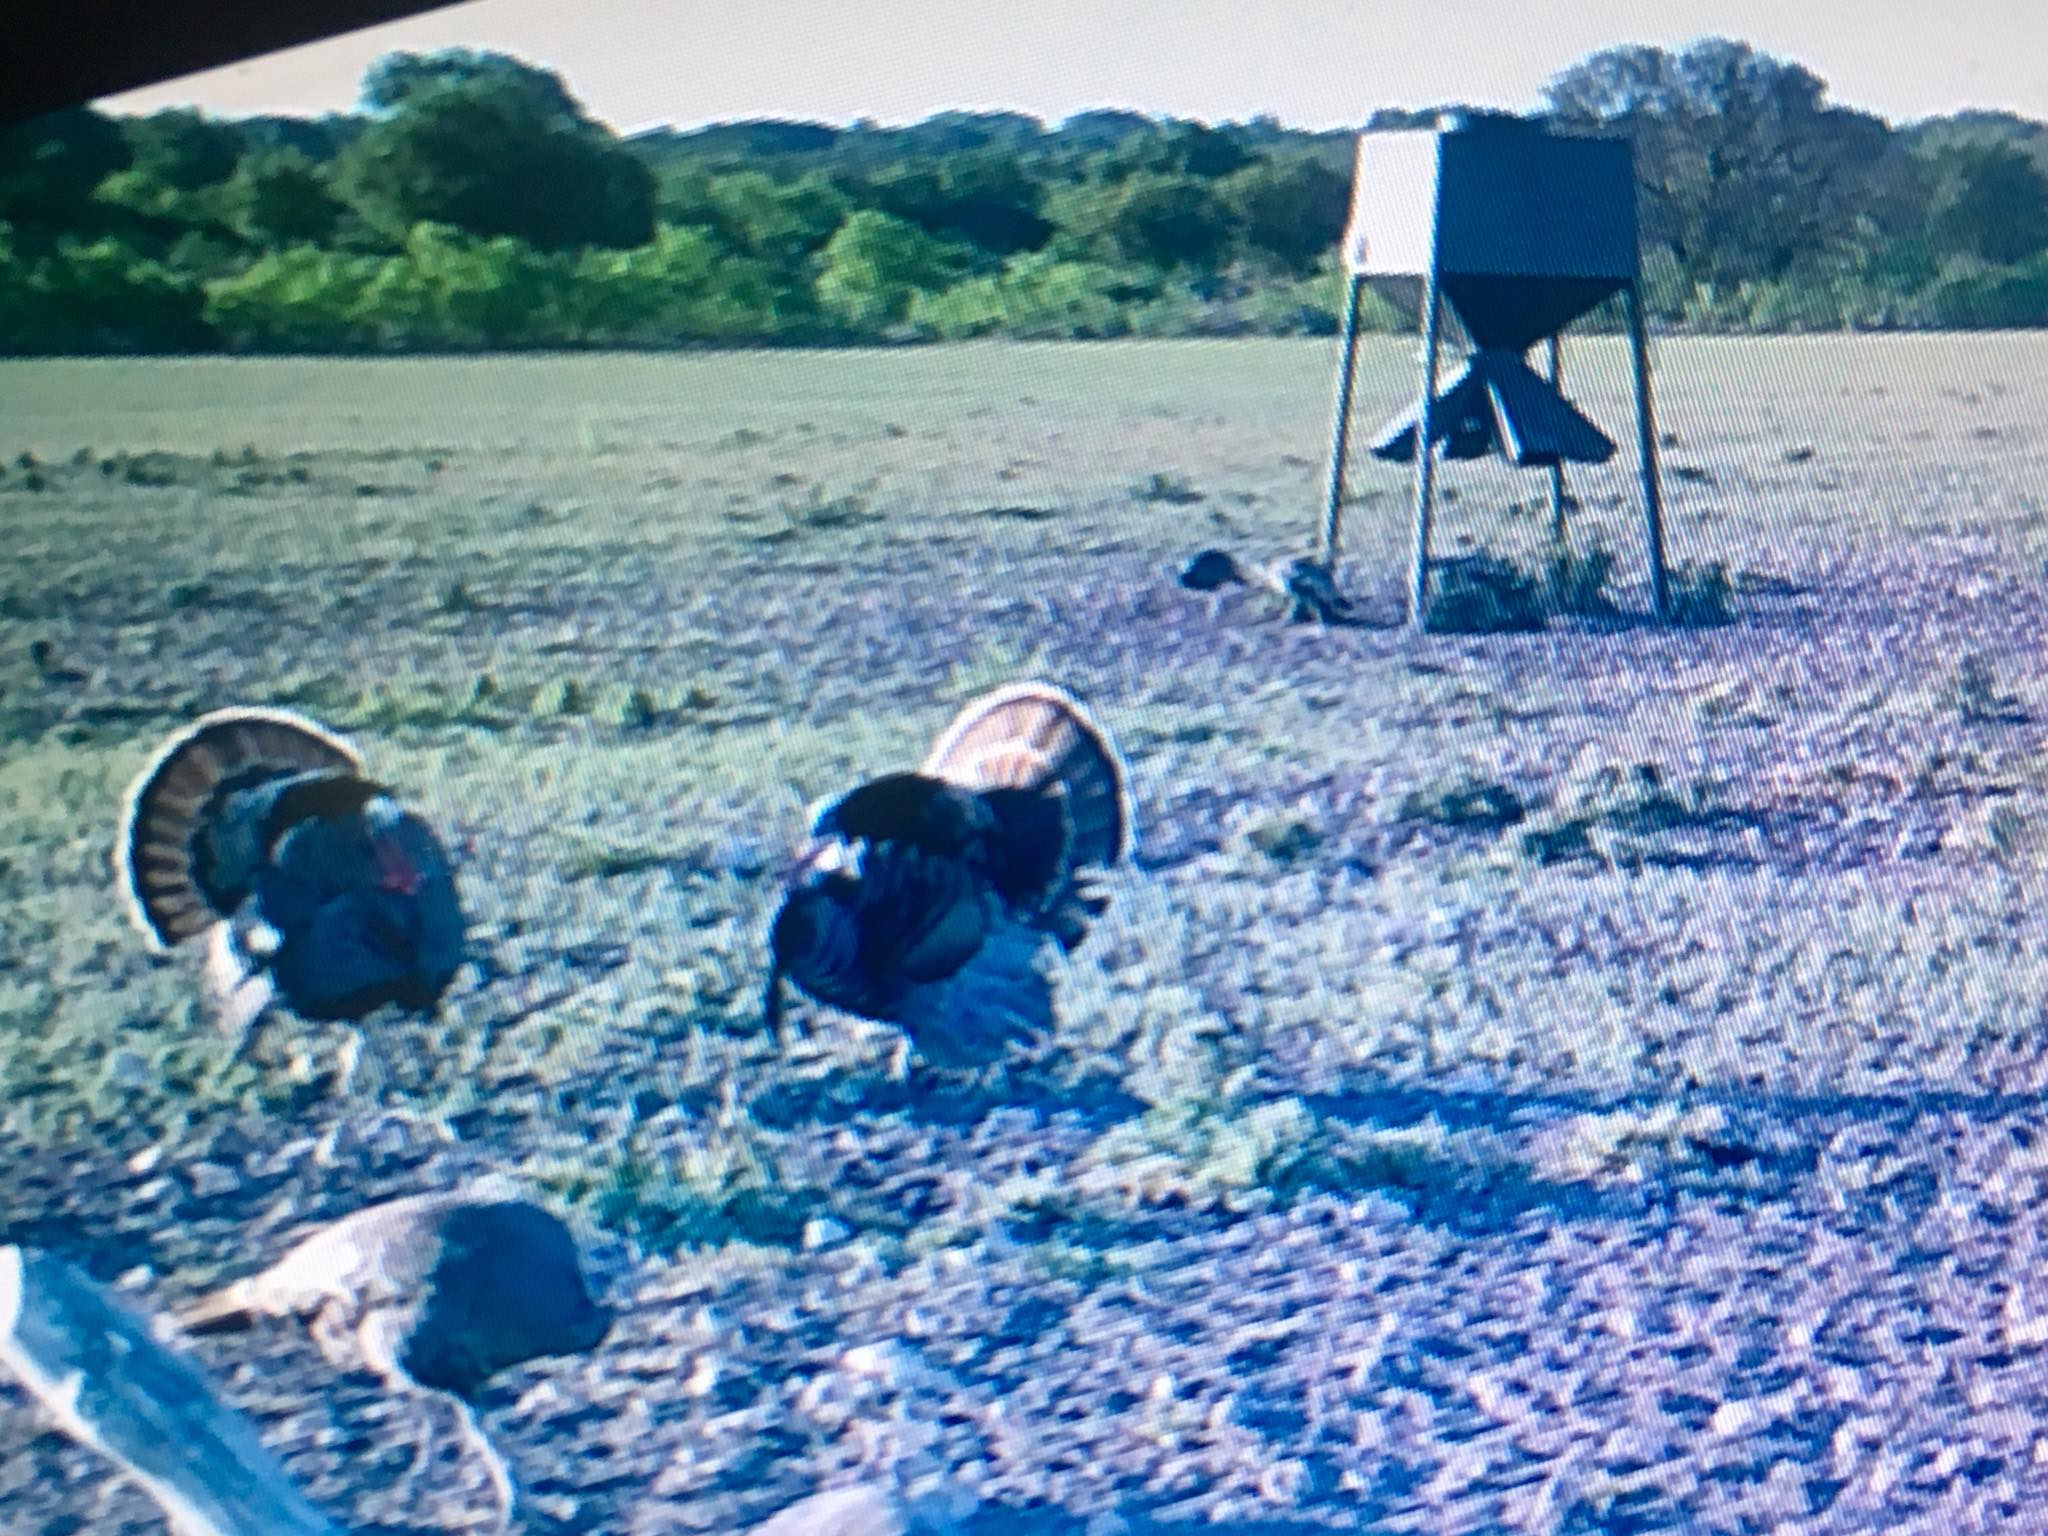 Baker 3 ranch camera shot of turkeys